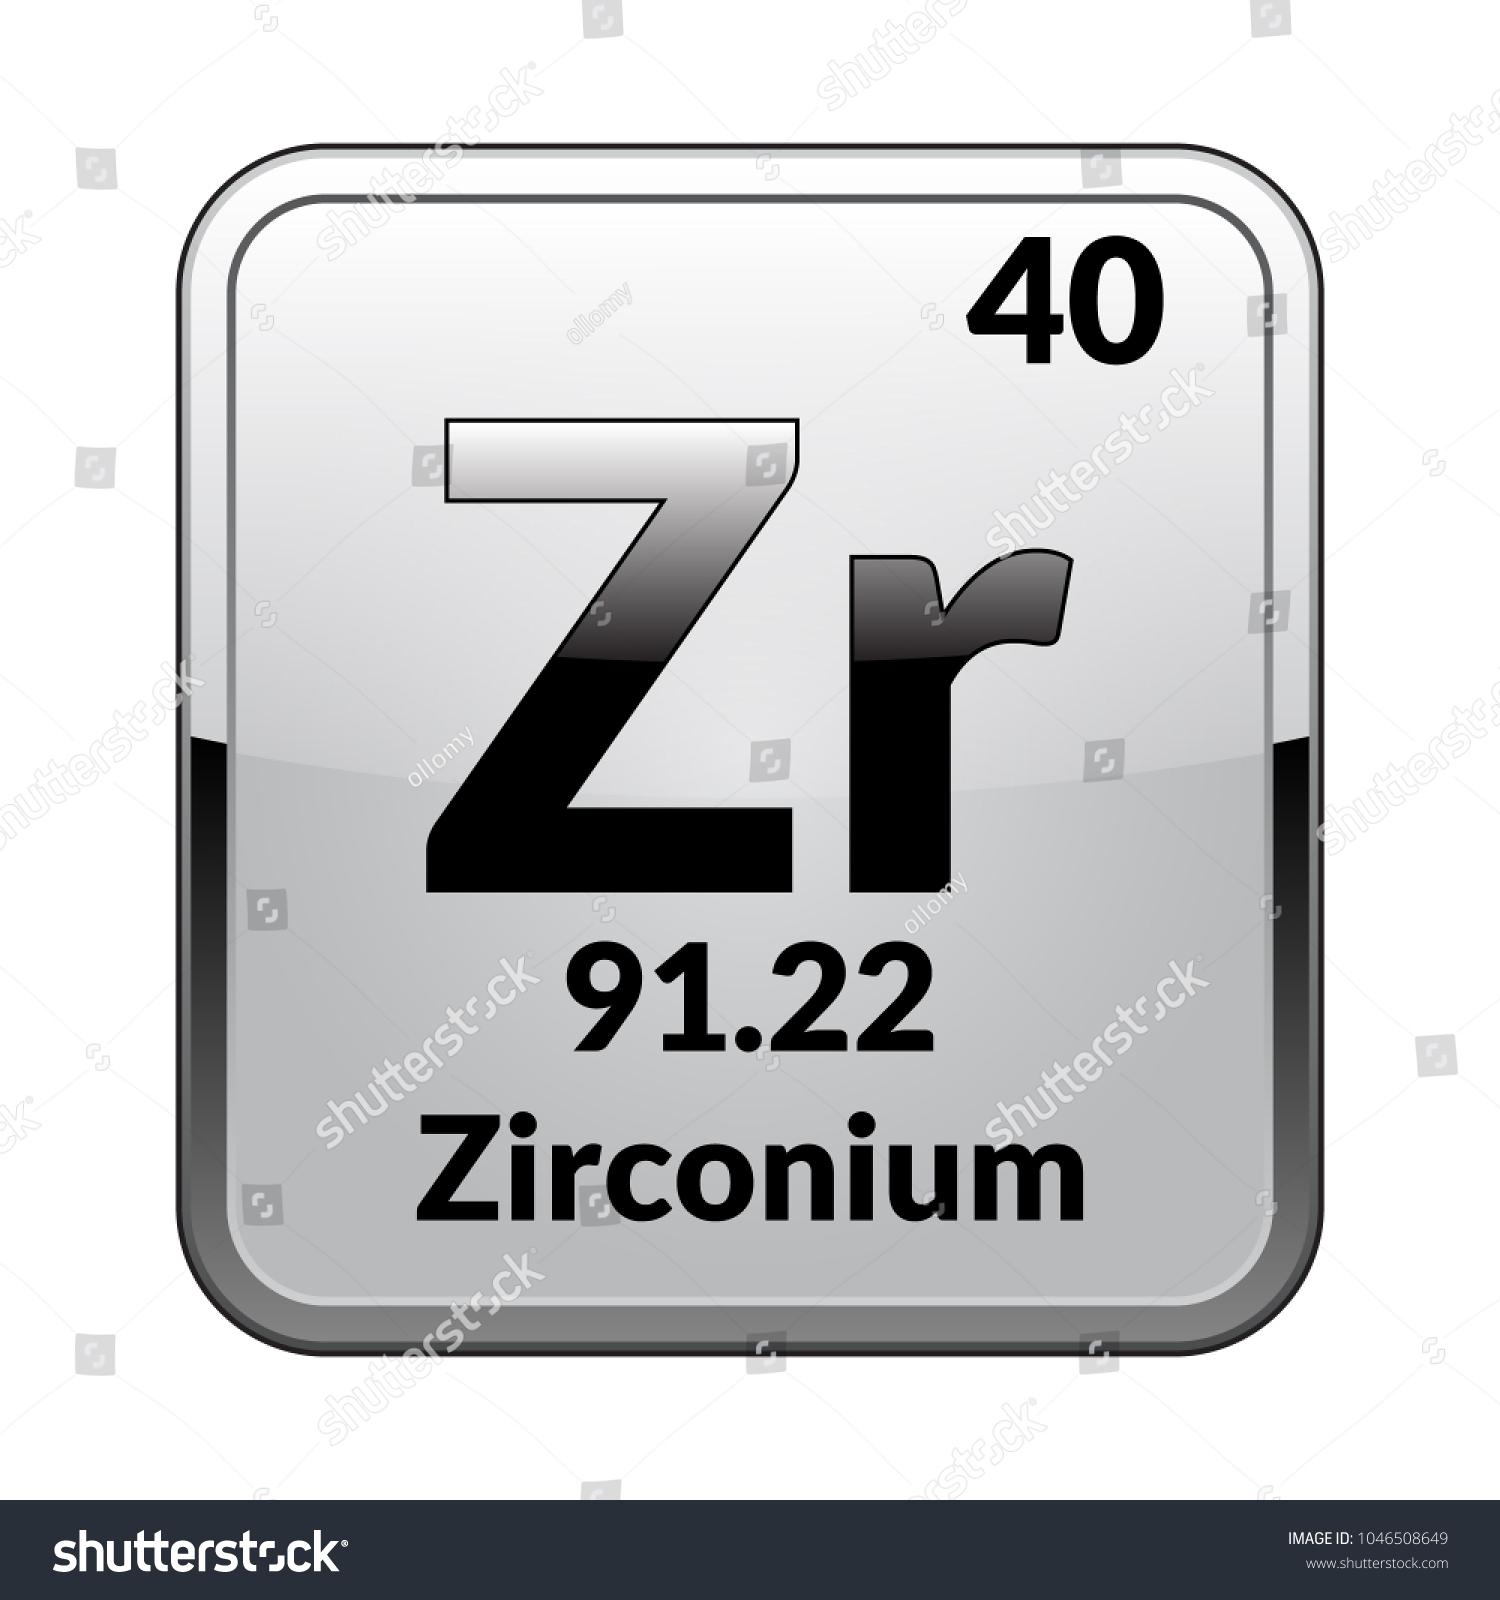 Zirconium symbolchemical element periodic table on stock vector zirconium symbolemical element of the periodic table on a glossy white background in a biocorpaavc Gallery